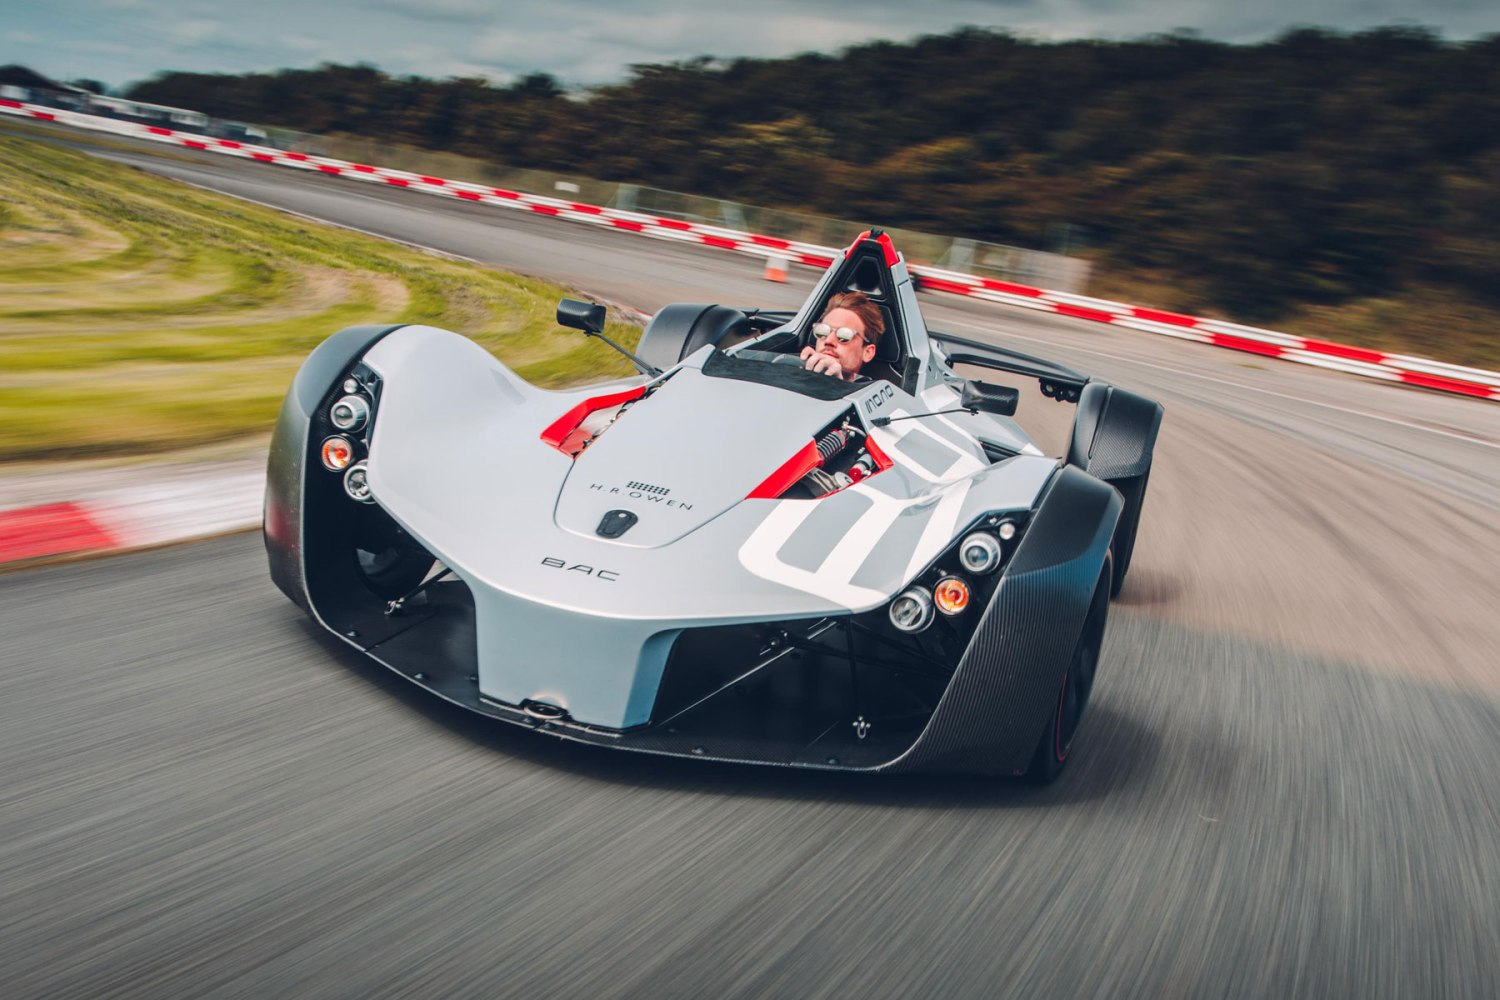 BAC Mono – 2.8 seconds (0-60mph)